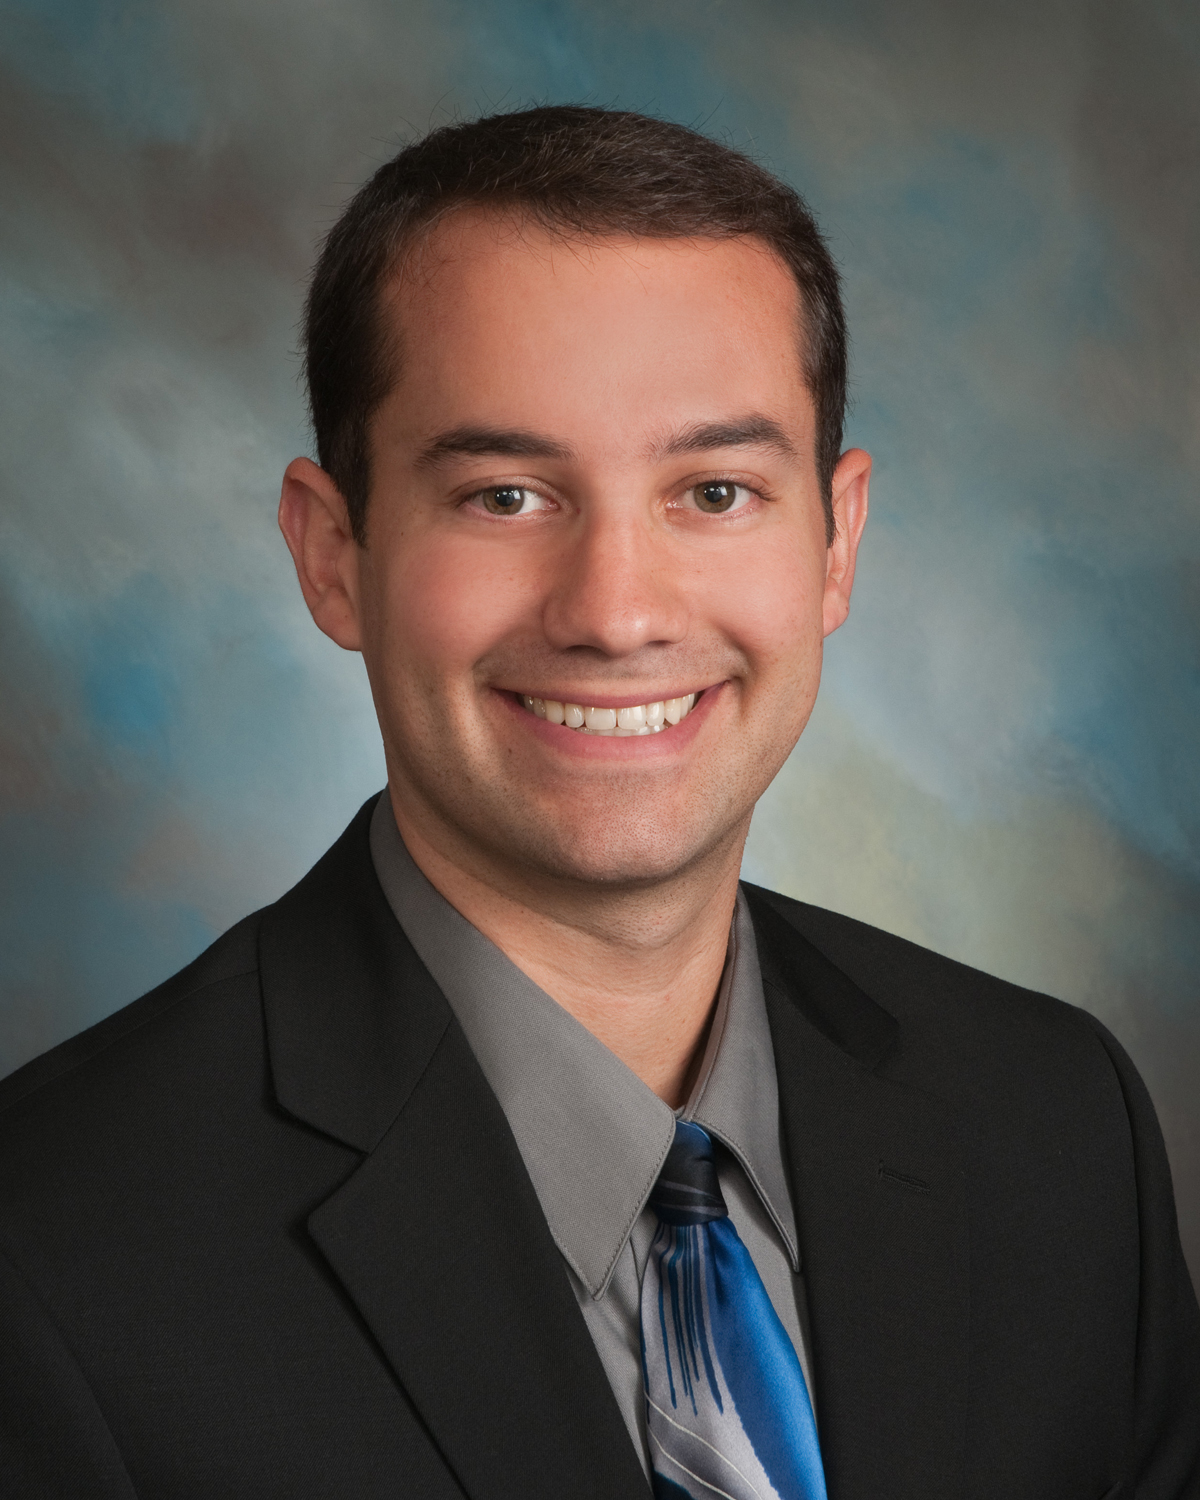 Pentucket Bank Announces Michael Milano as Vice President/Credit Administration Officer